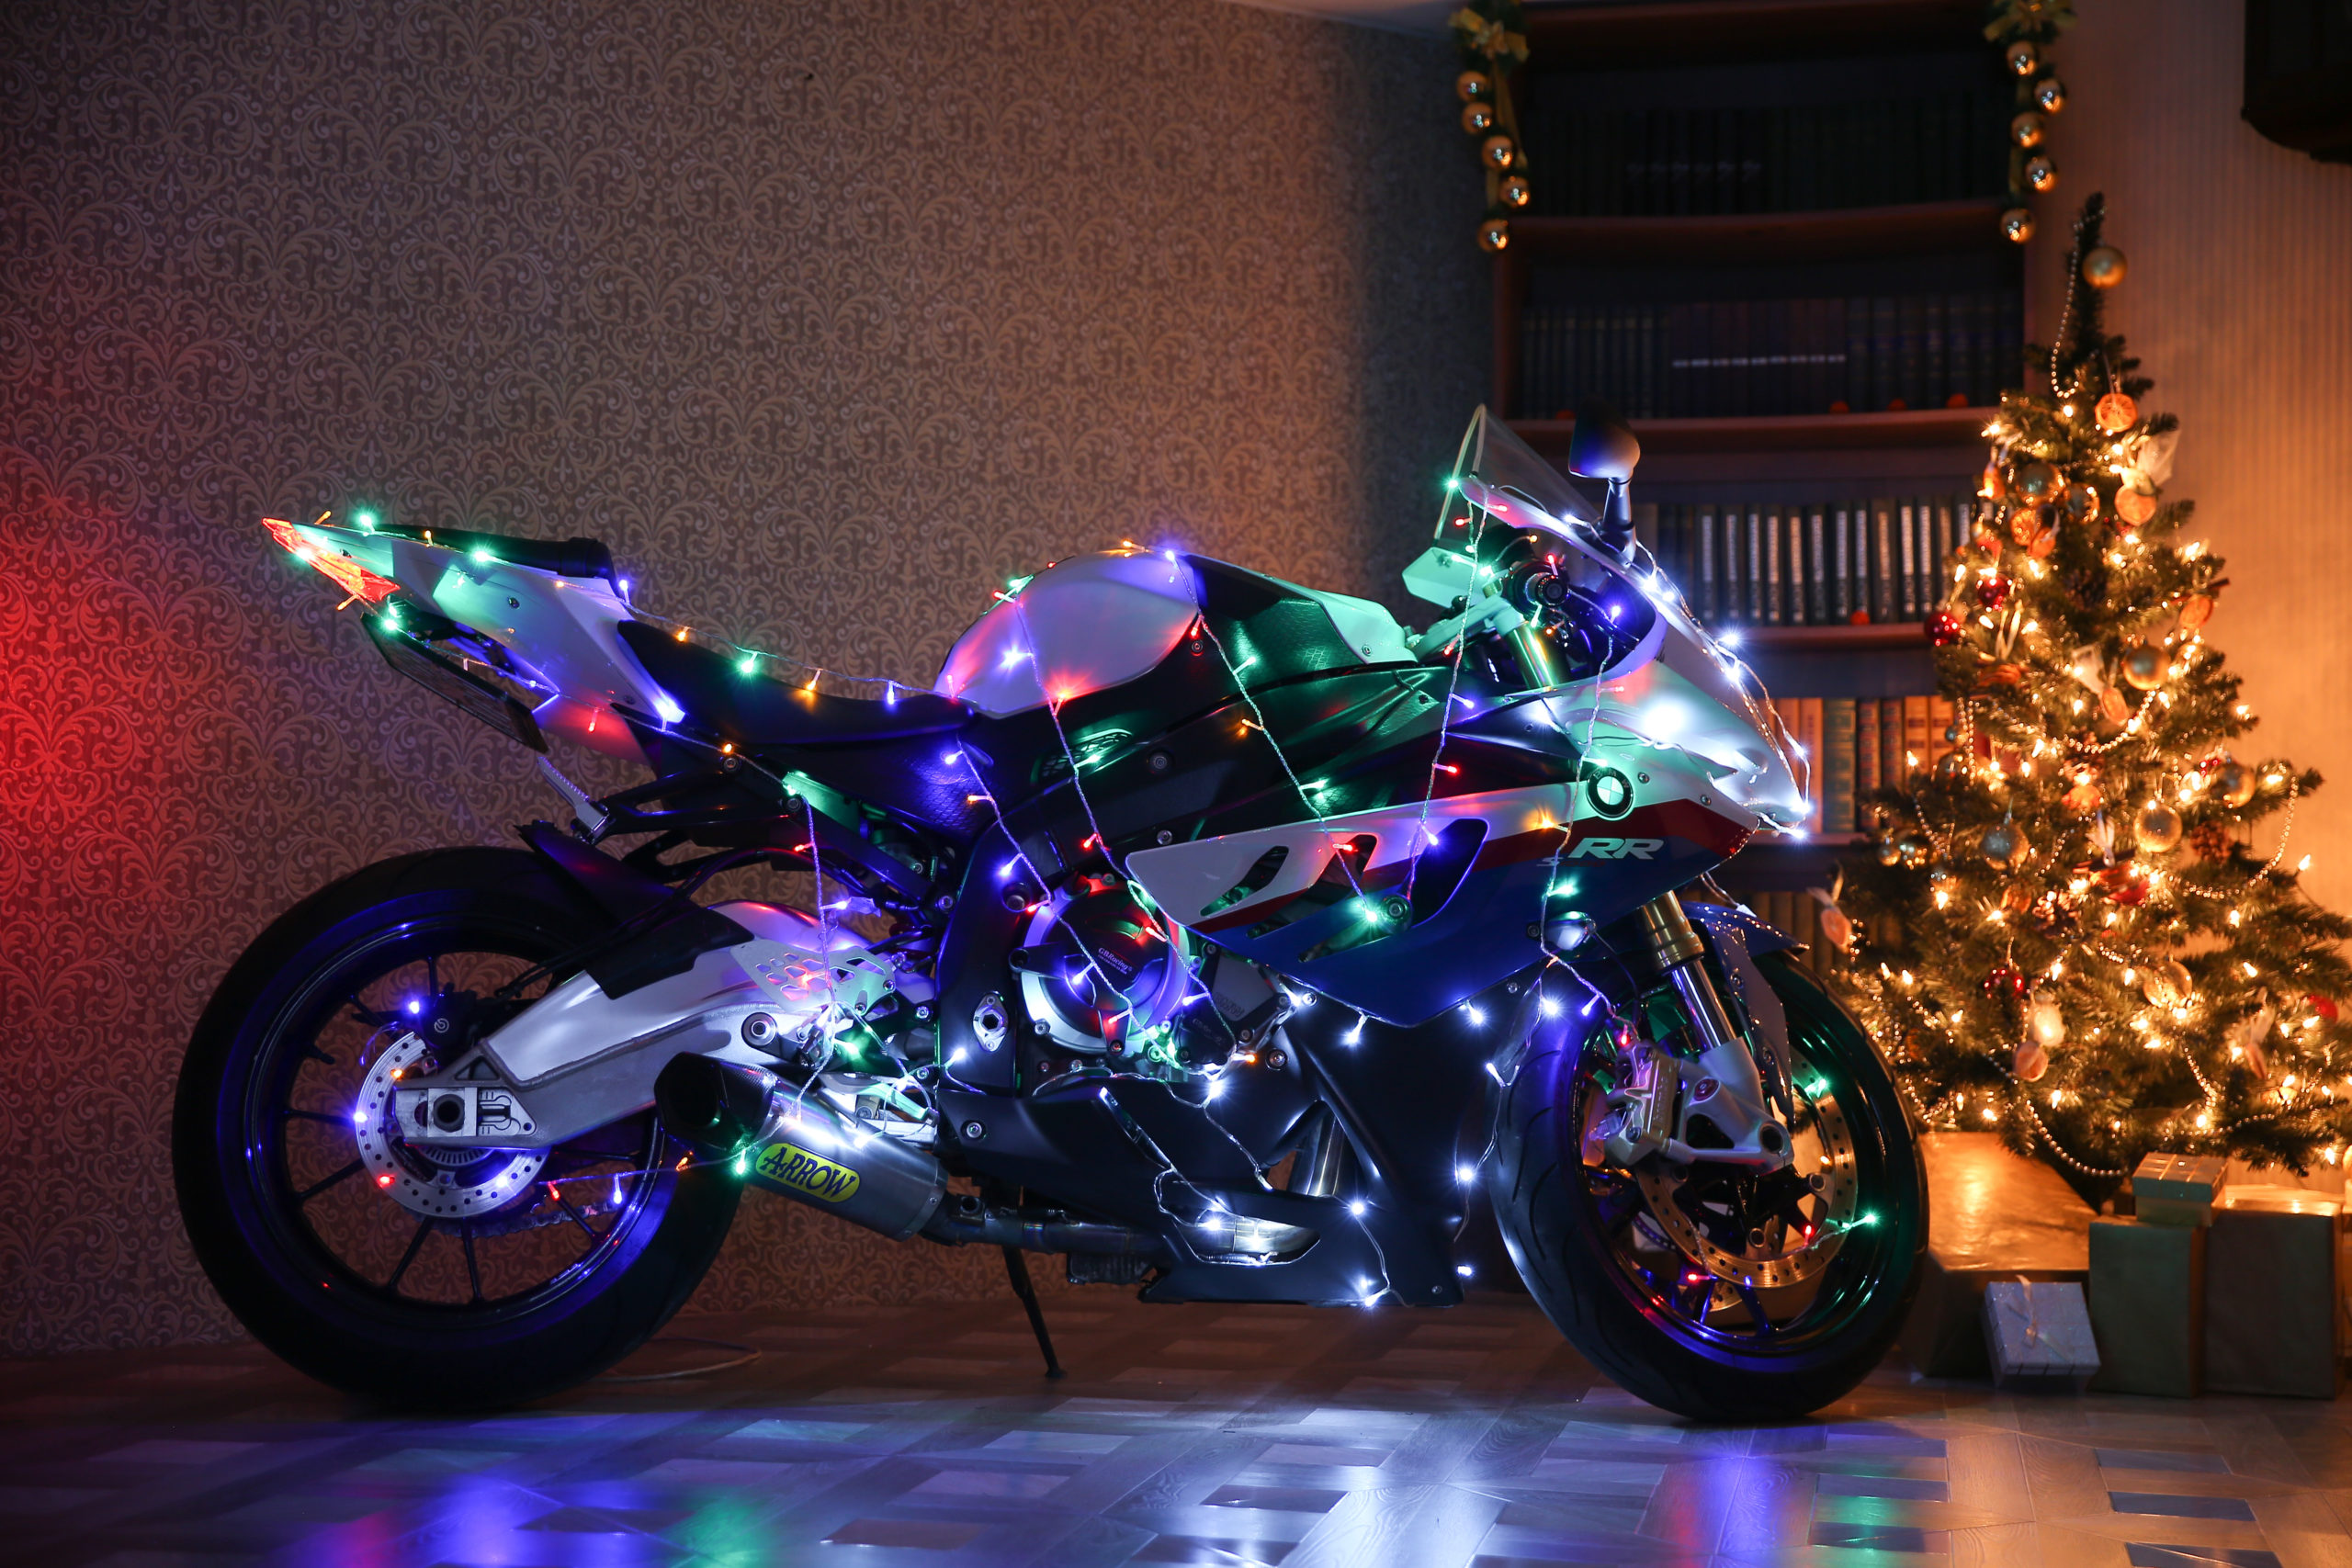 Motorcycle by Christmas tree